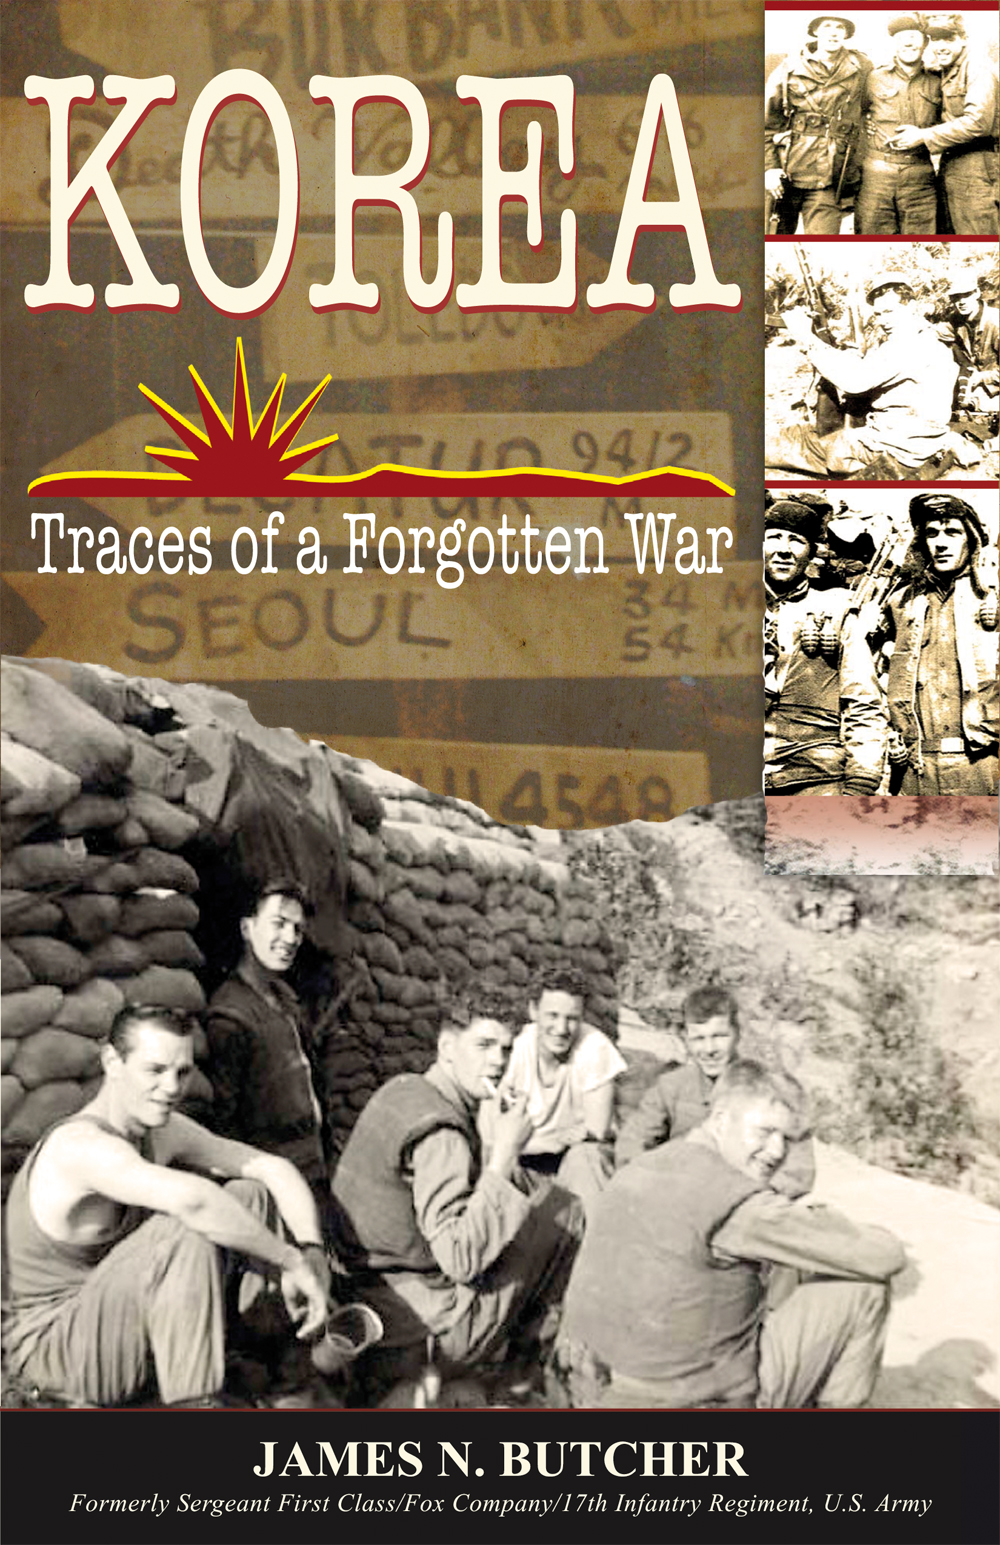 Korea: Traces of a Forgotten War